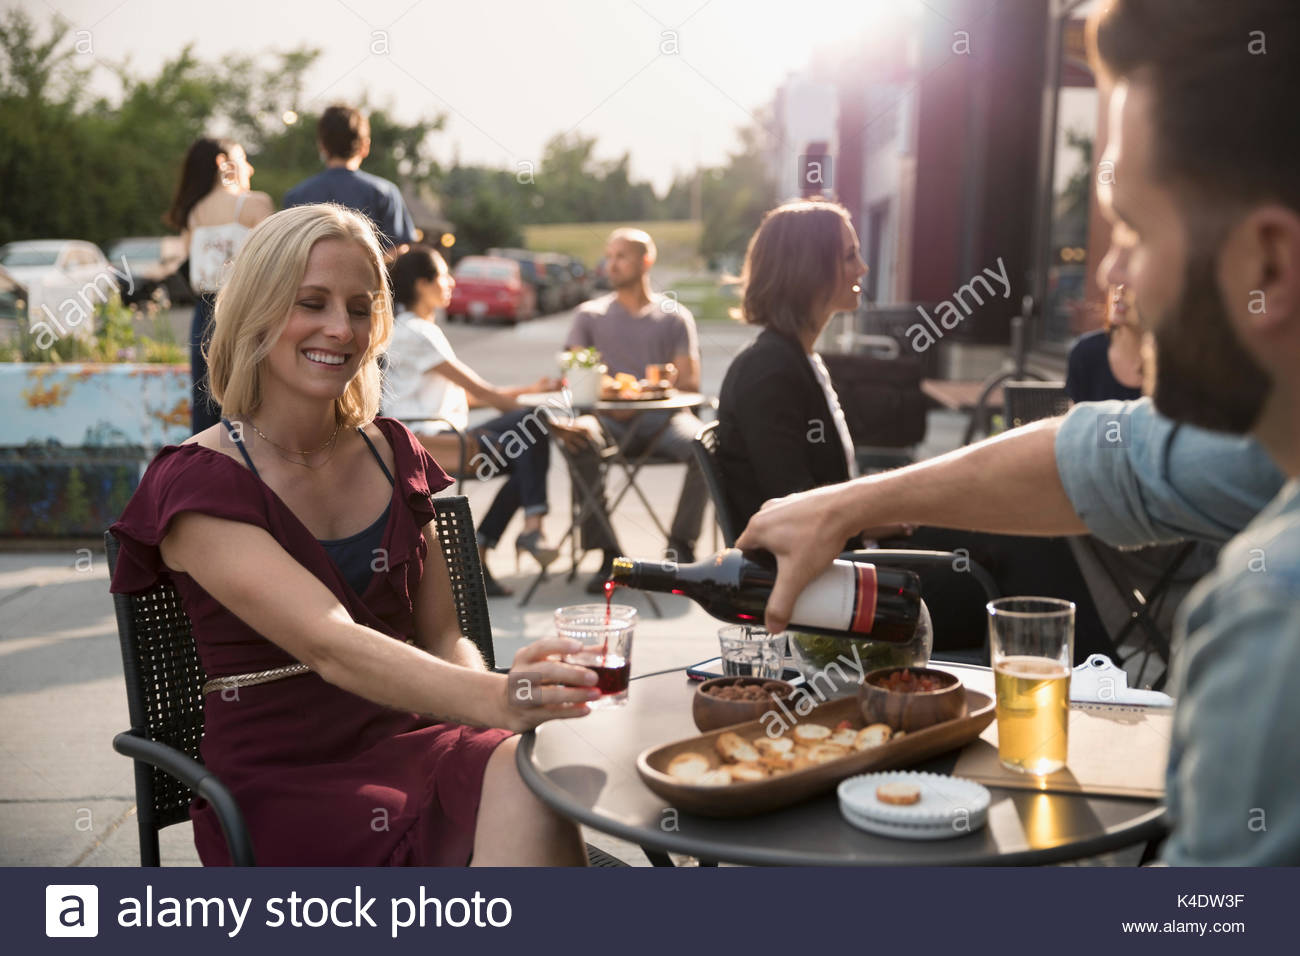 Man pouring red wine for girlfriend at sidewalk cafe - Stock Image